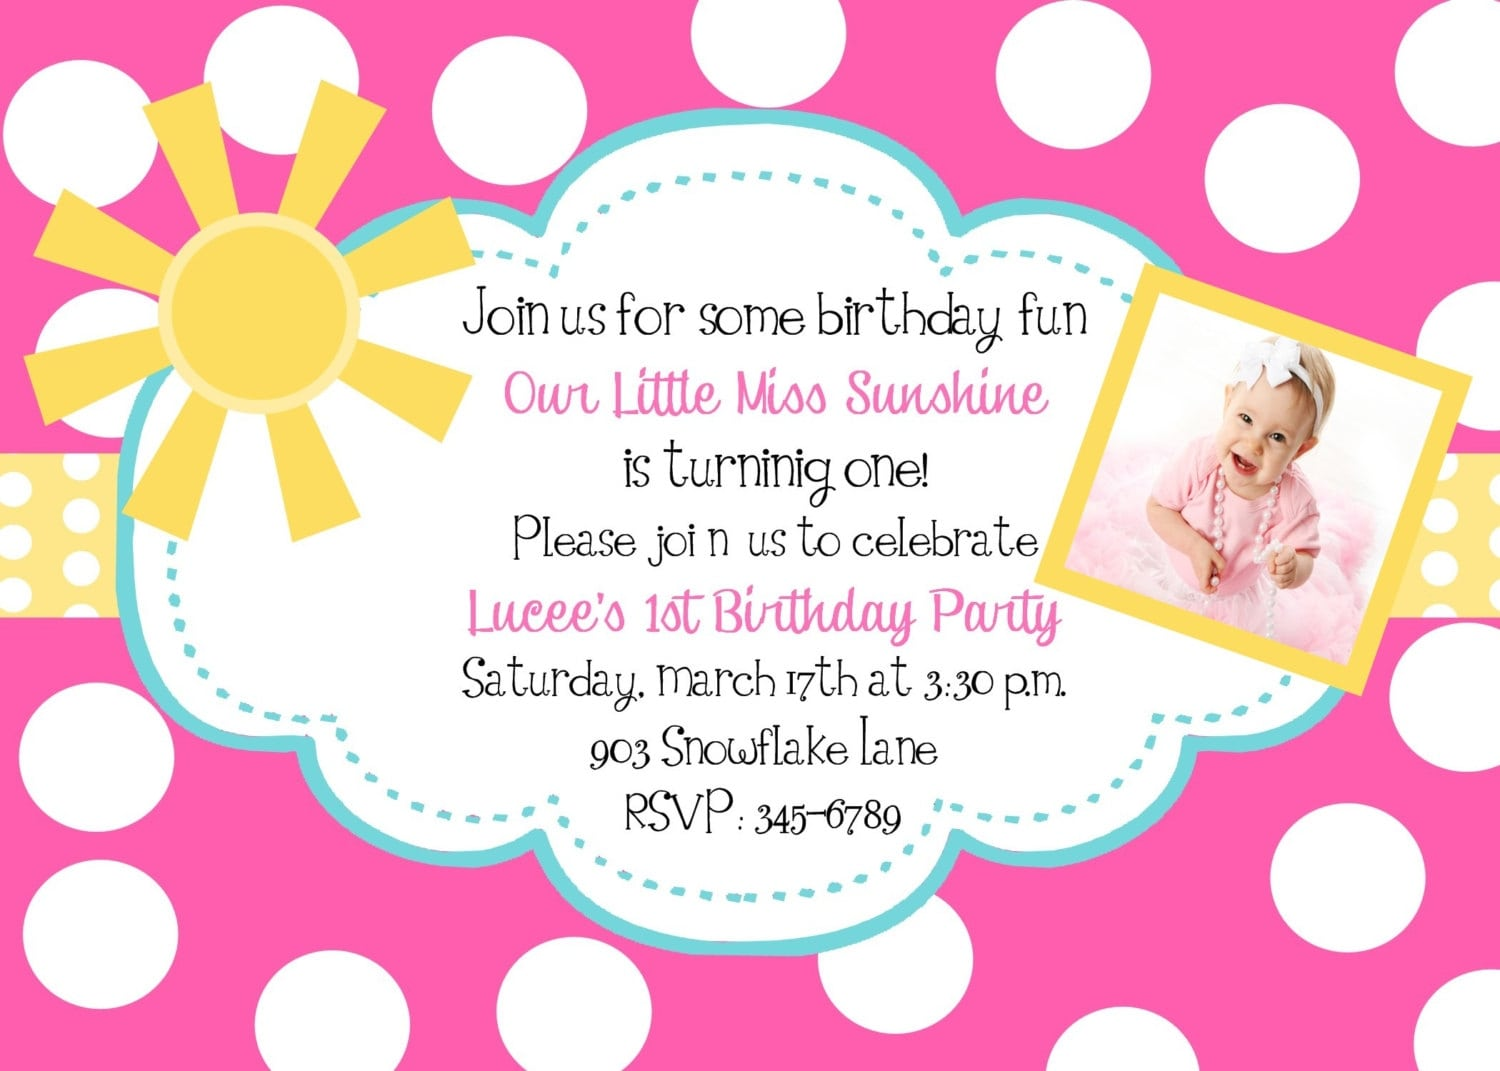 29th Birthday Party Invitation Wording Delightful 1st Invitations Girl